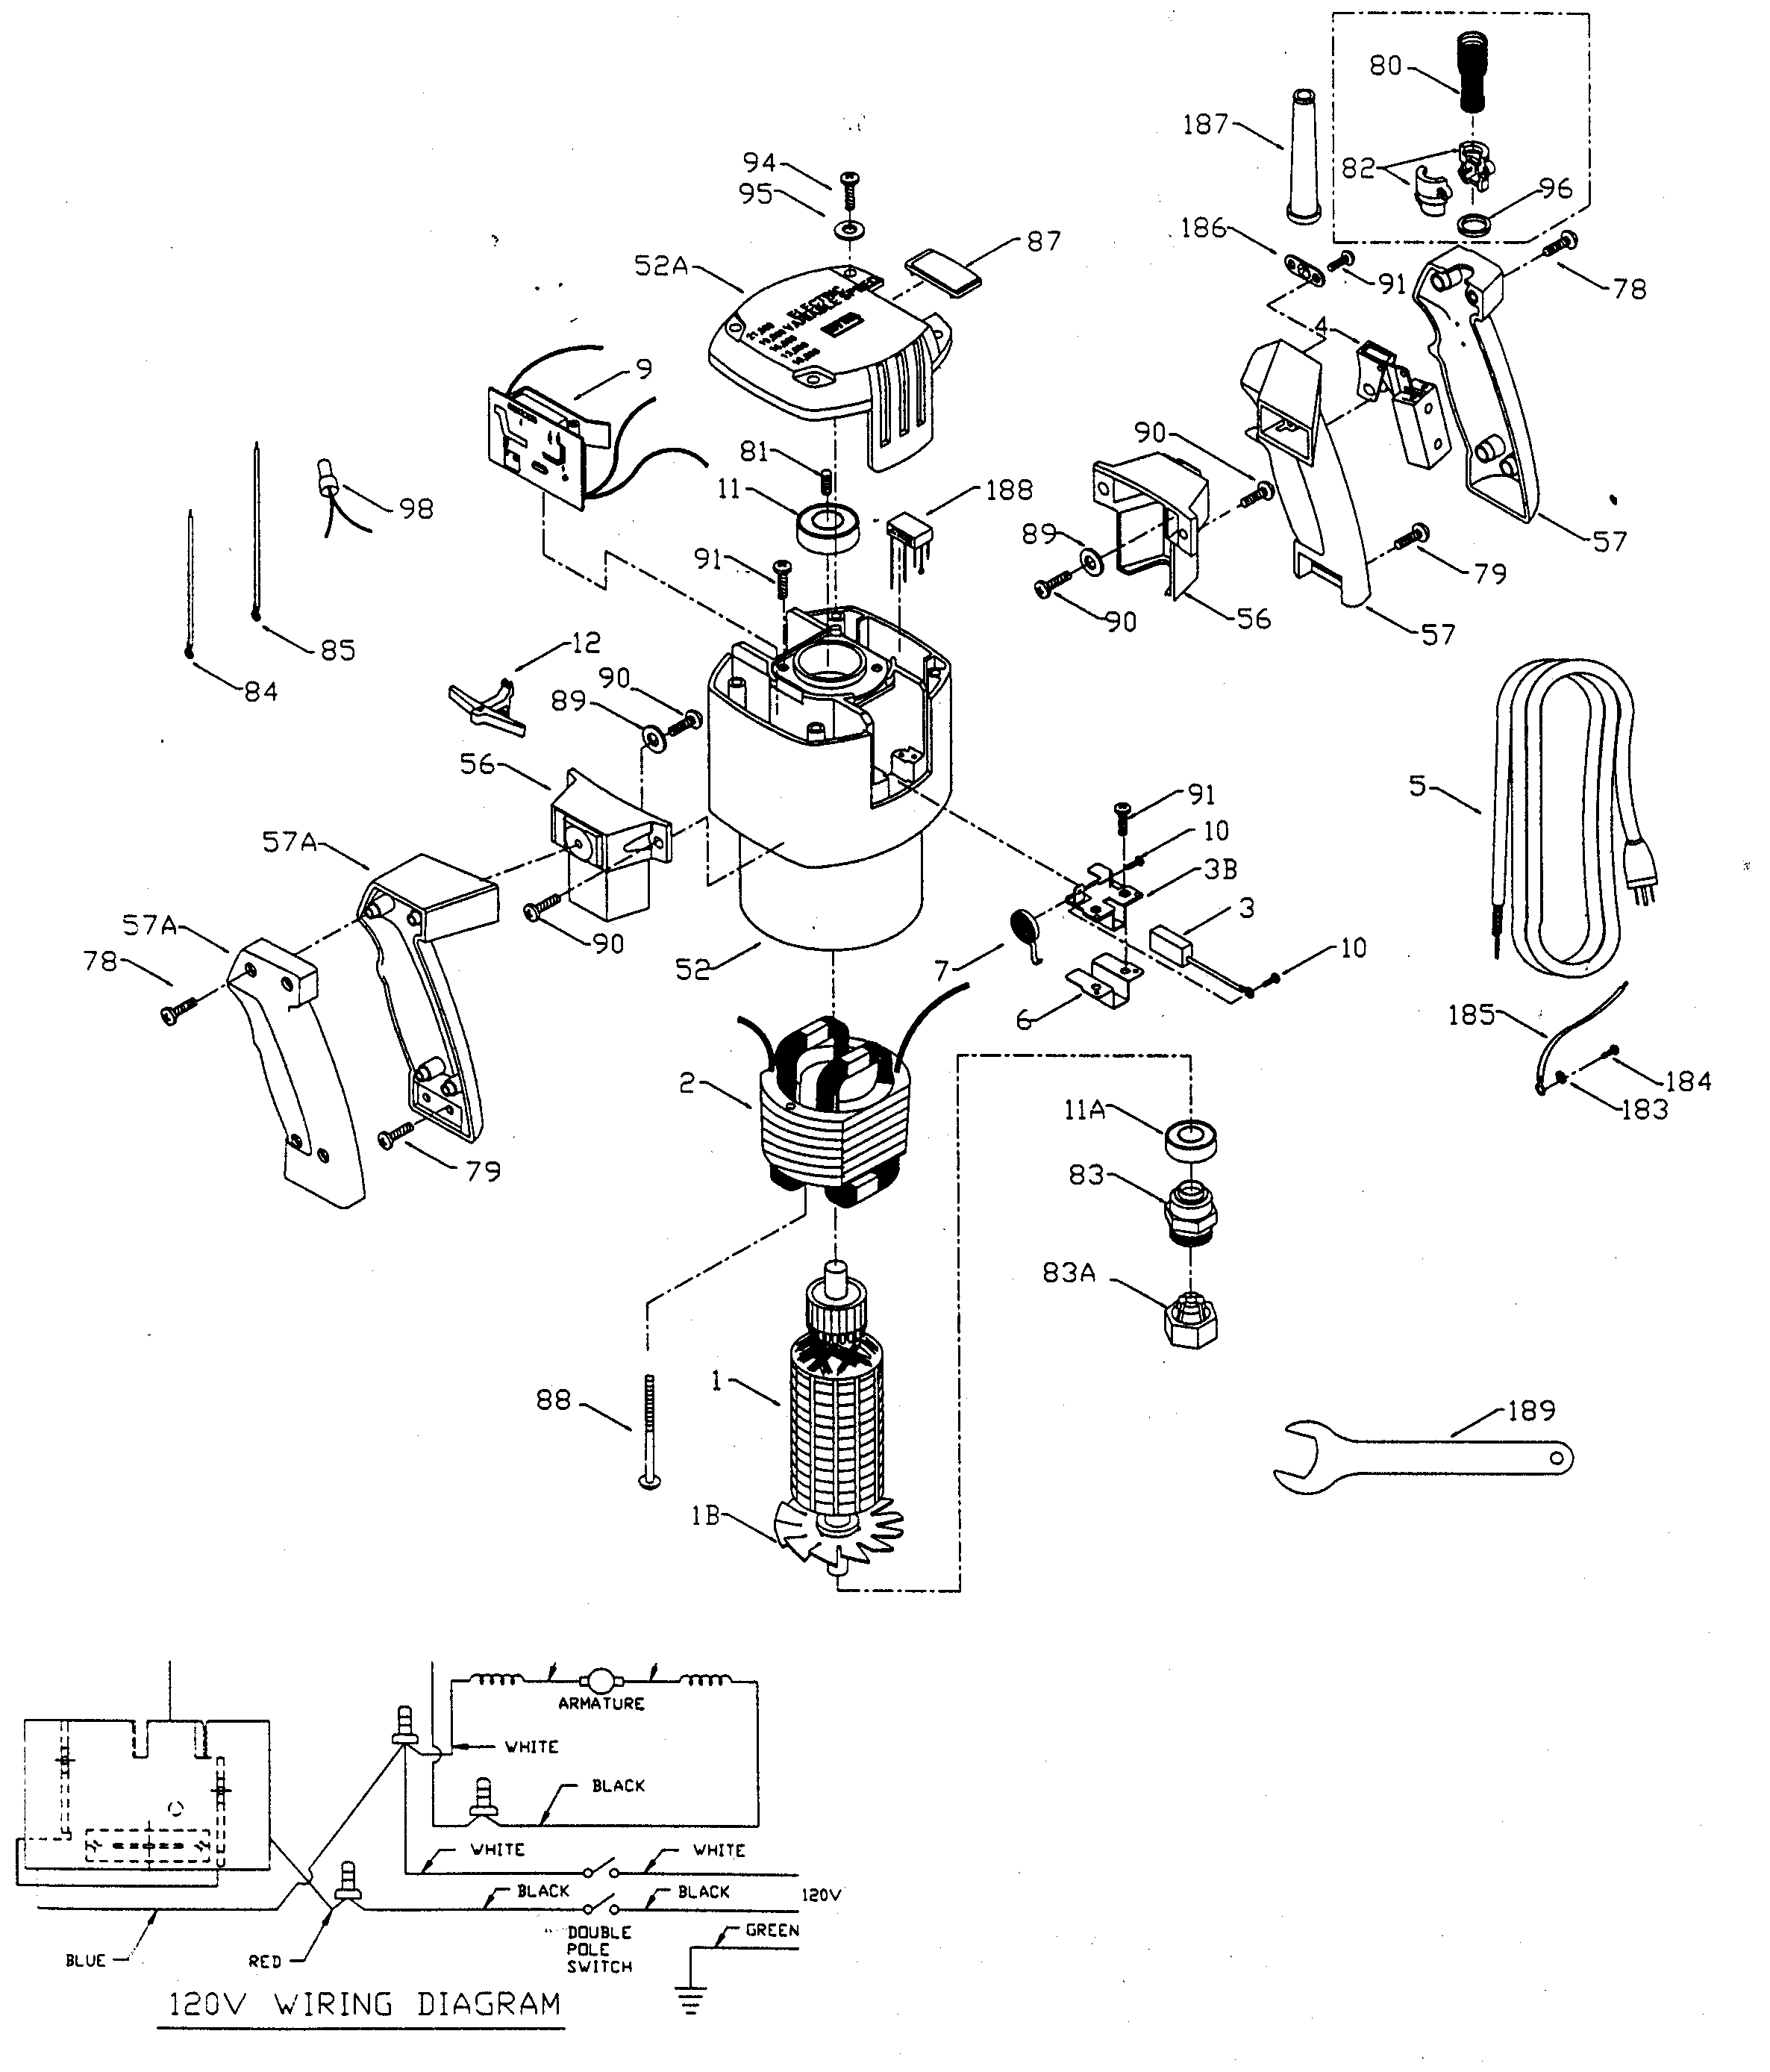 Porter Cable 7539TYPE1 motor assy diagram